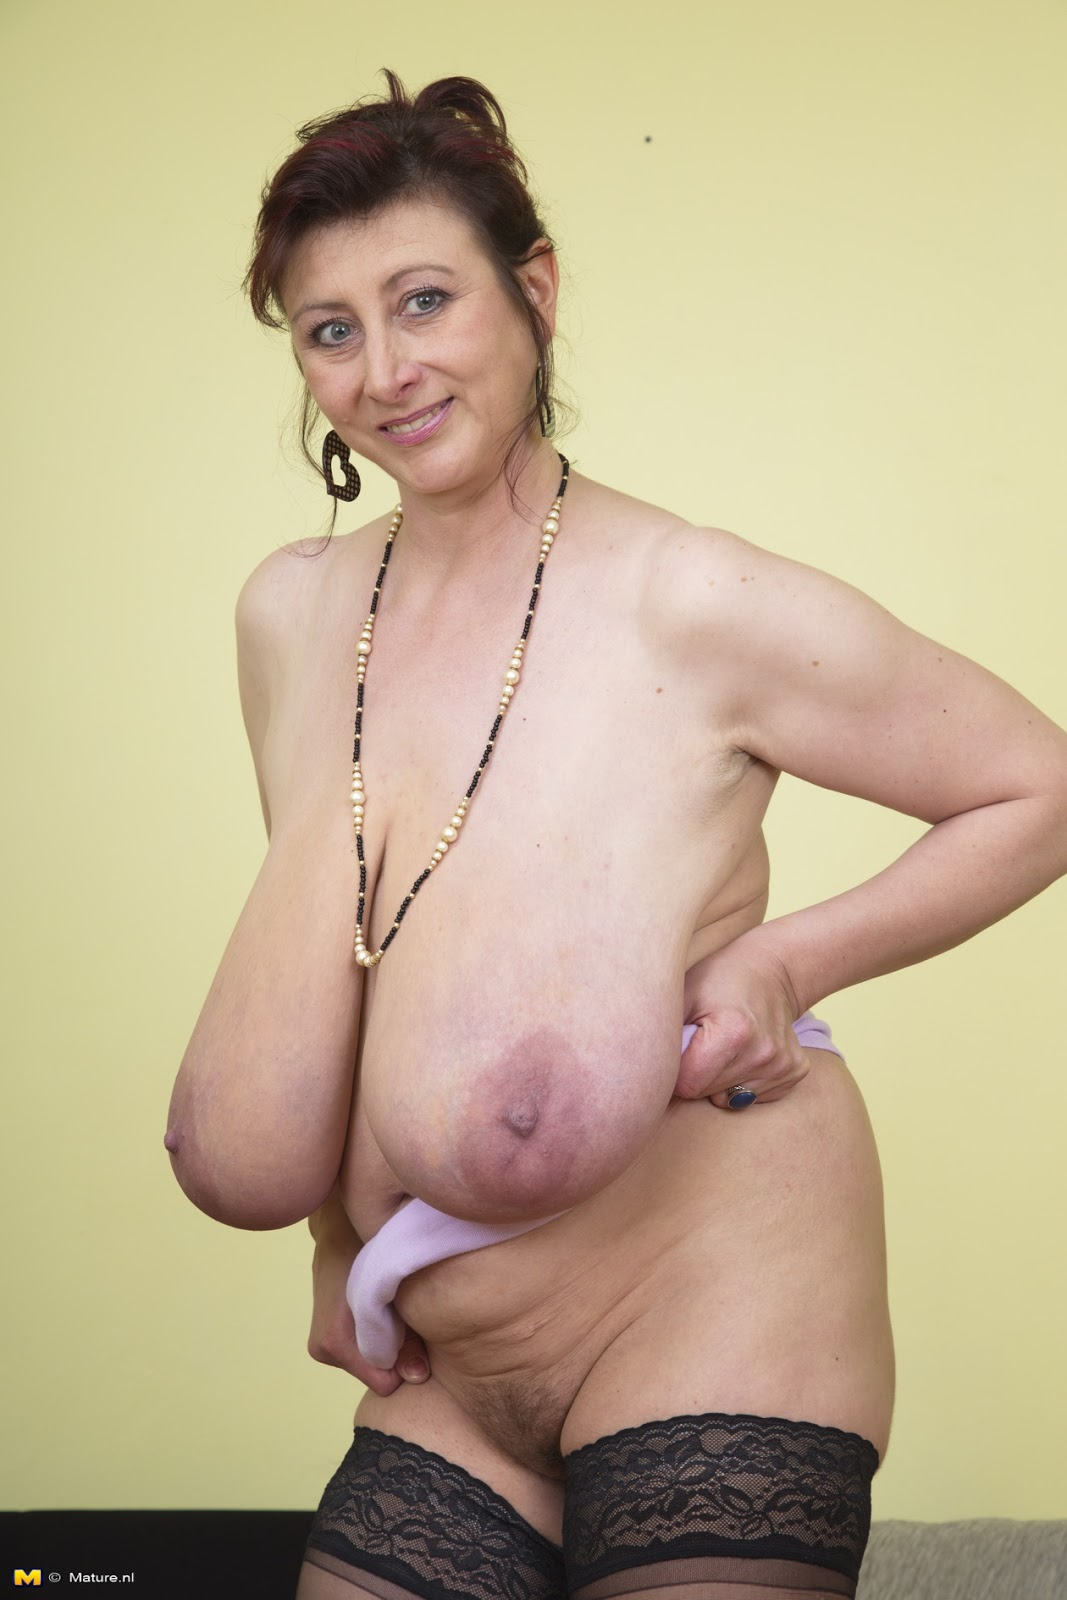 Archiveoffoldwomenblogspotcom Huge Mature Boobs Of Jana P-4400